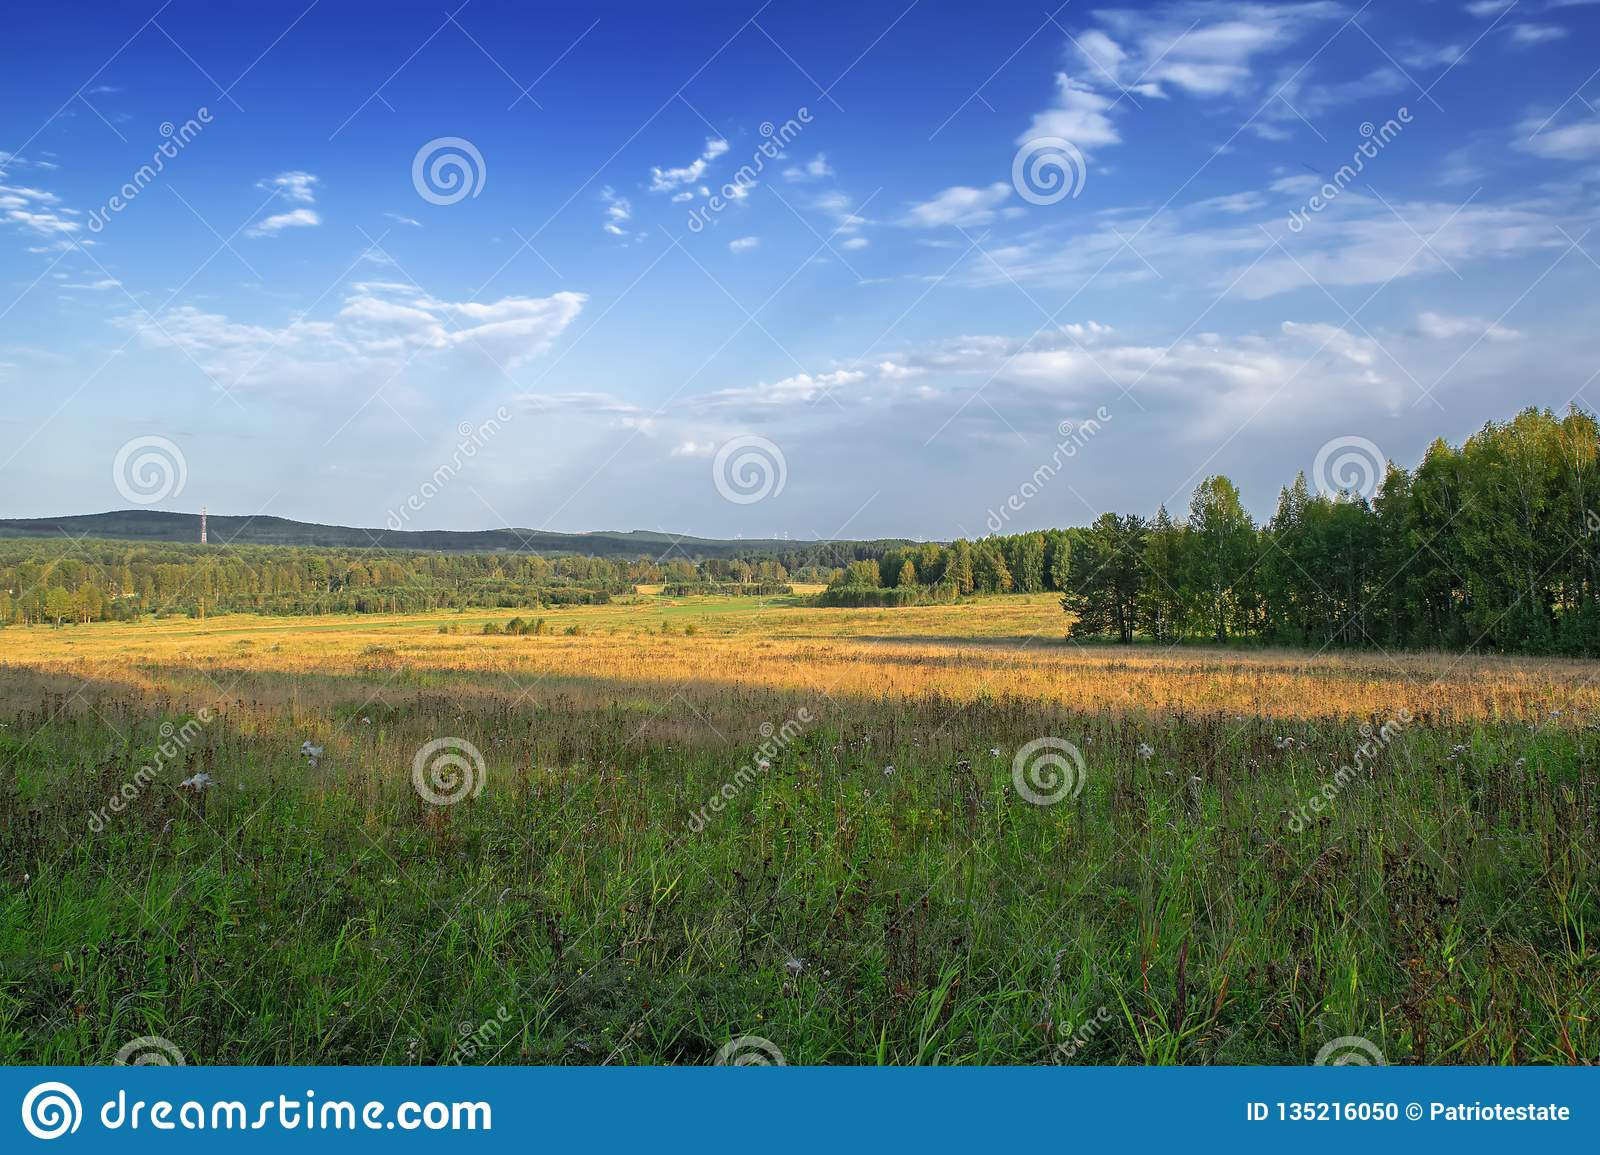 Meadow and forest against the blue sky with light white clouds